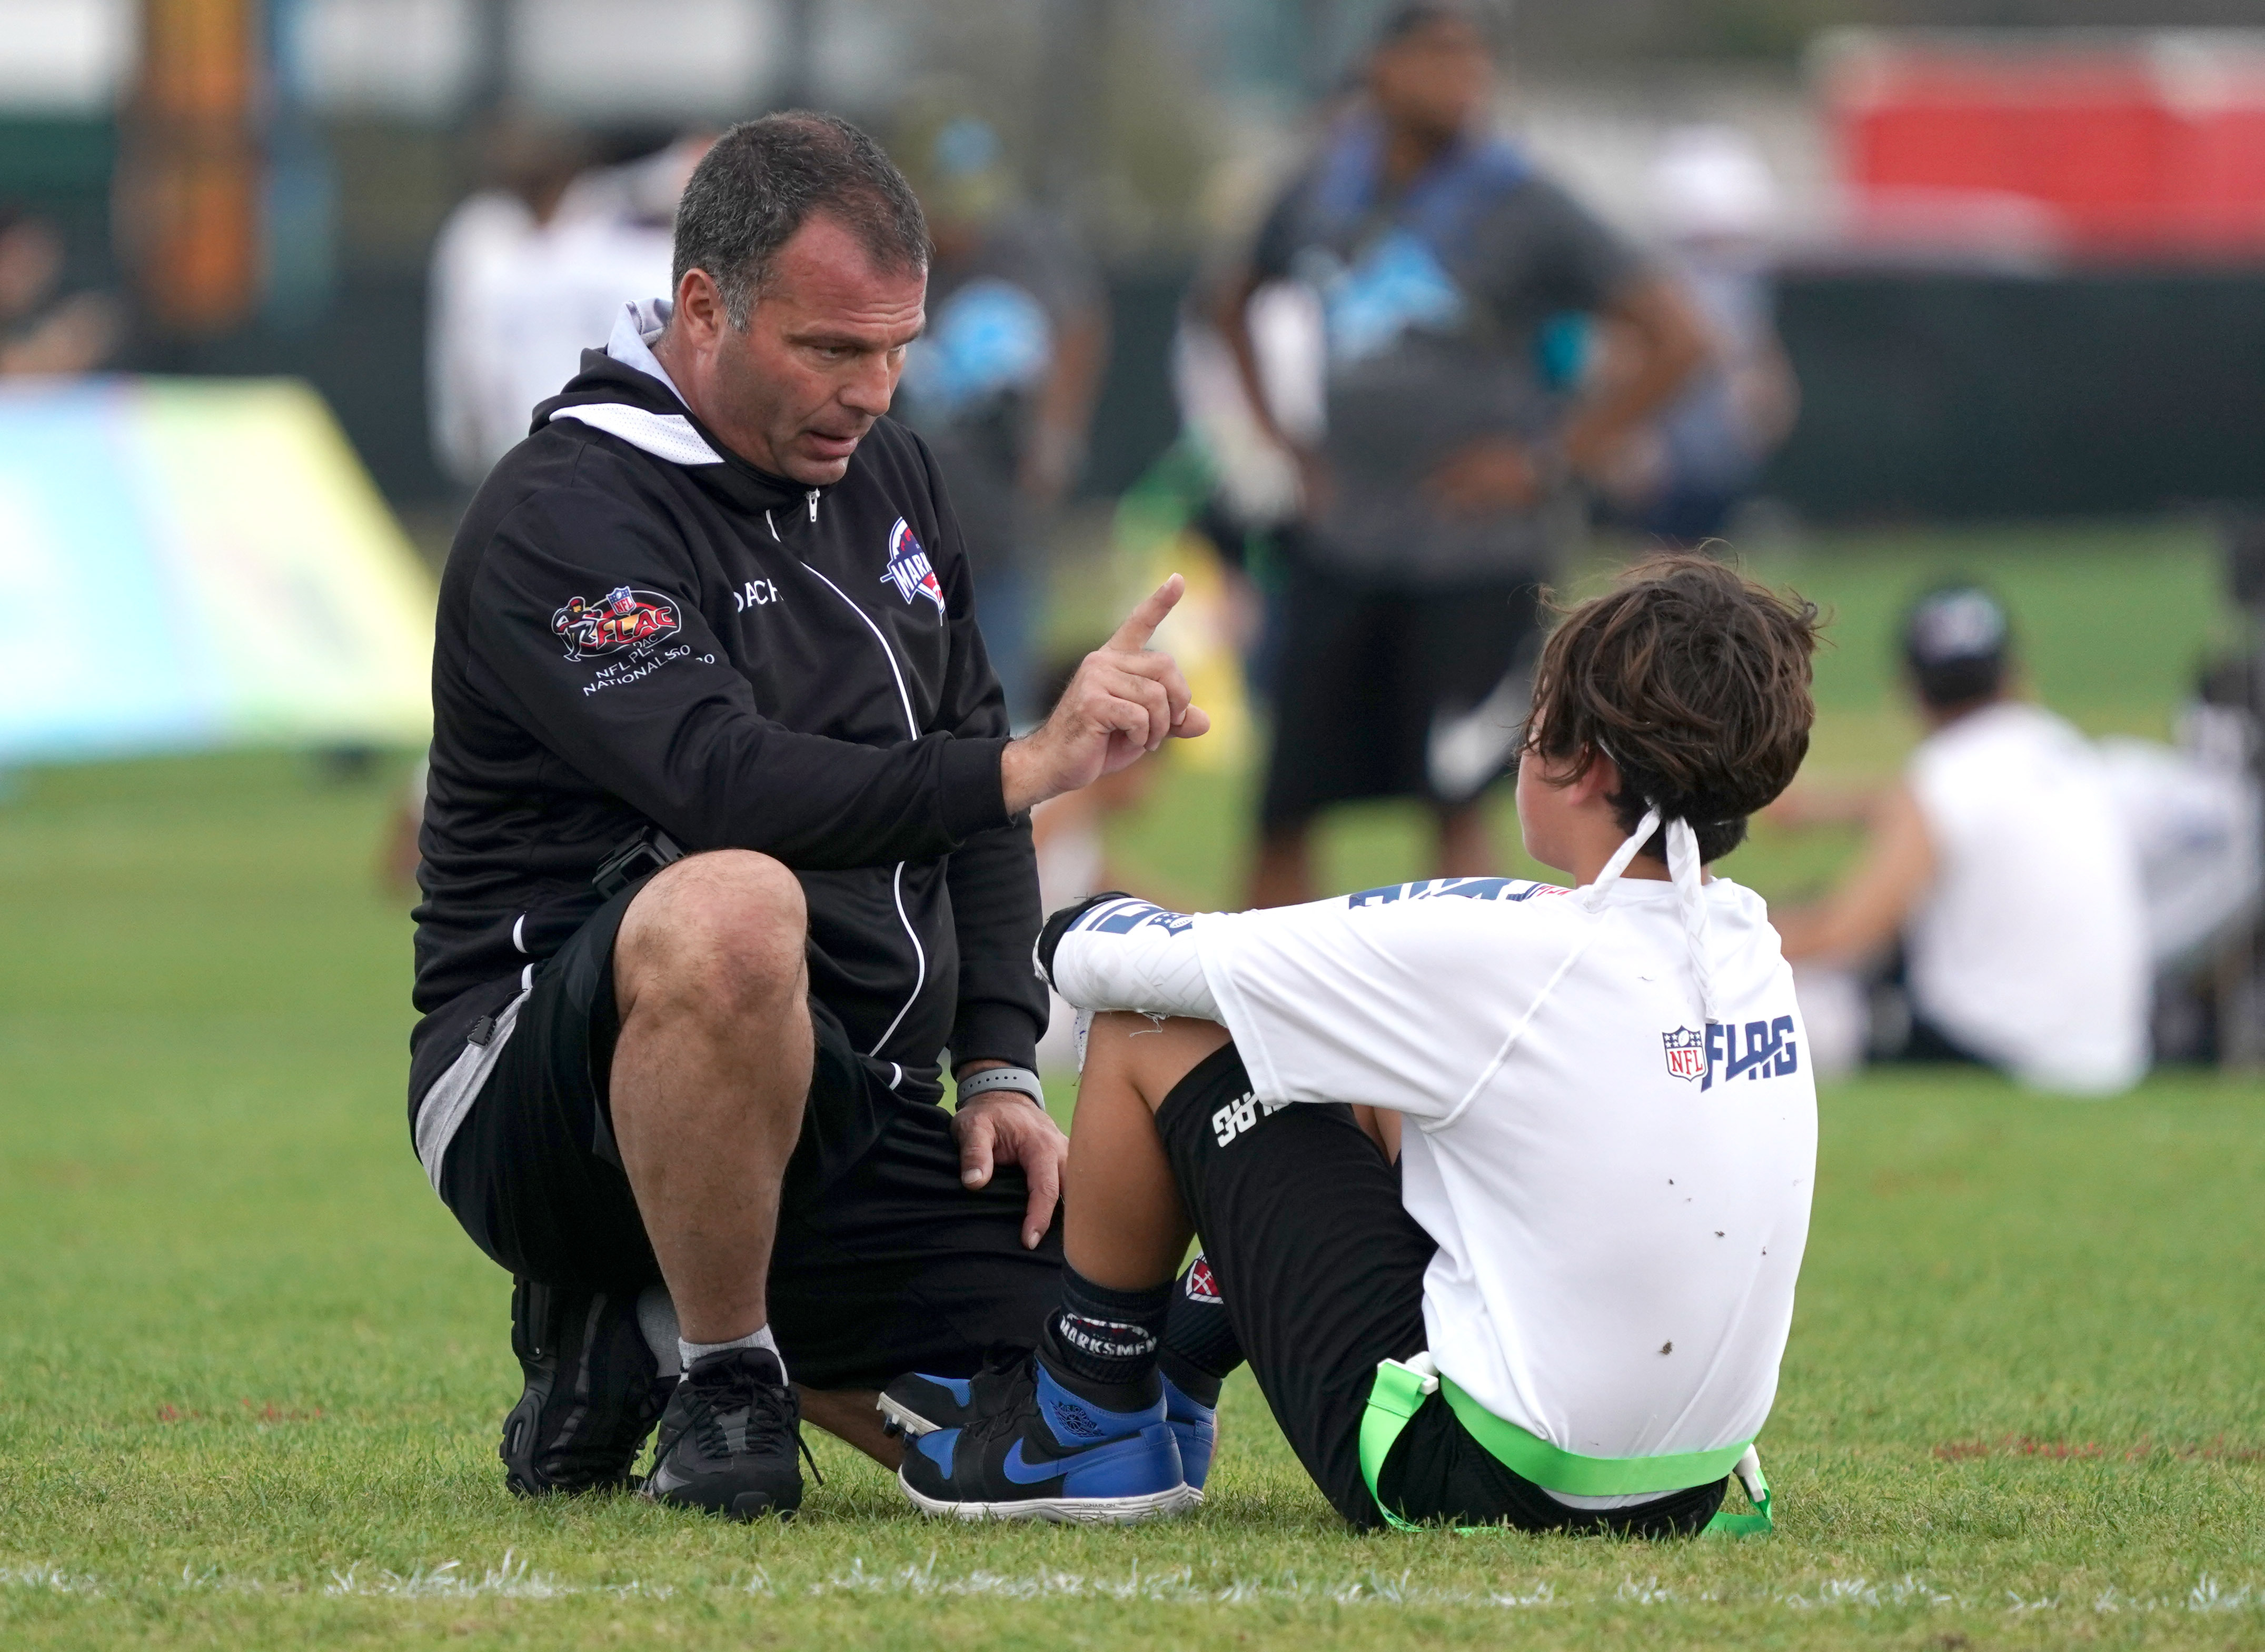 Tips for Preventing Concussions in Sports